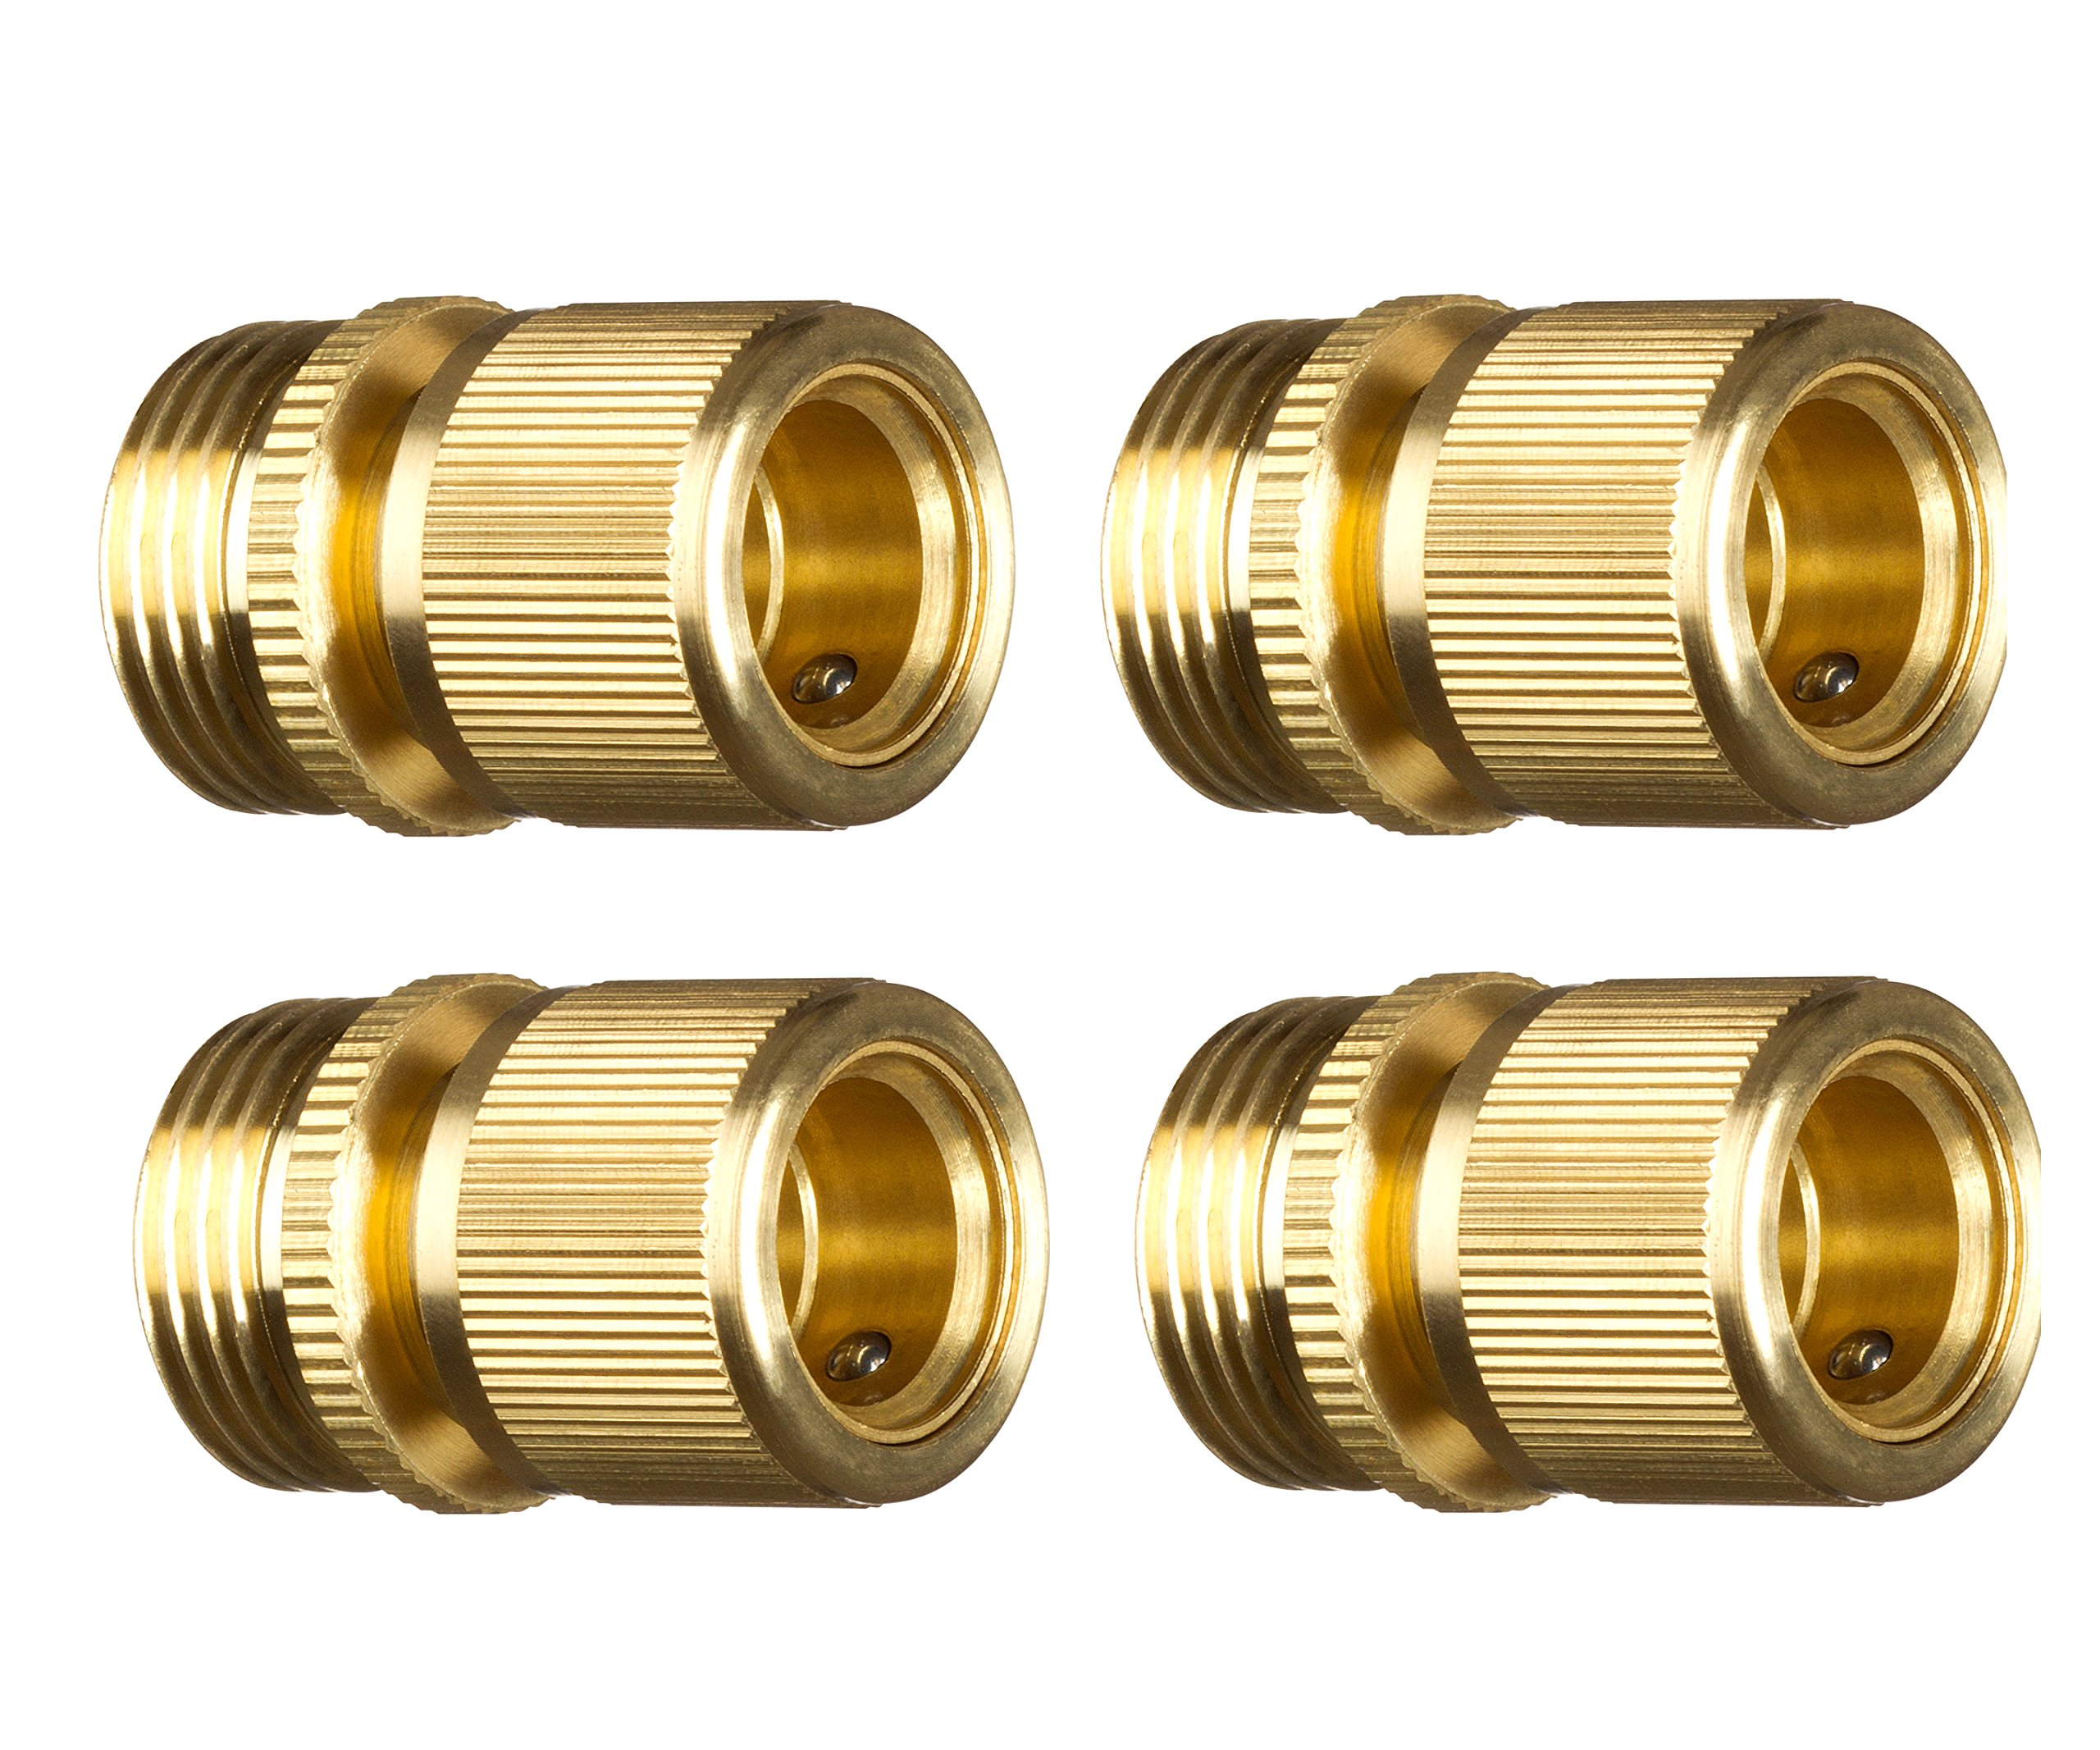 GORILLA EASY CONNECT New Garden Hose Quick Connector. ¾ inch GHT Brass Easy Connect Fitting 4-Piece Female (Only